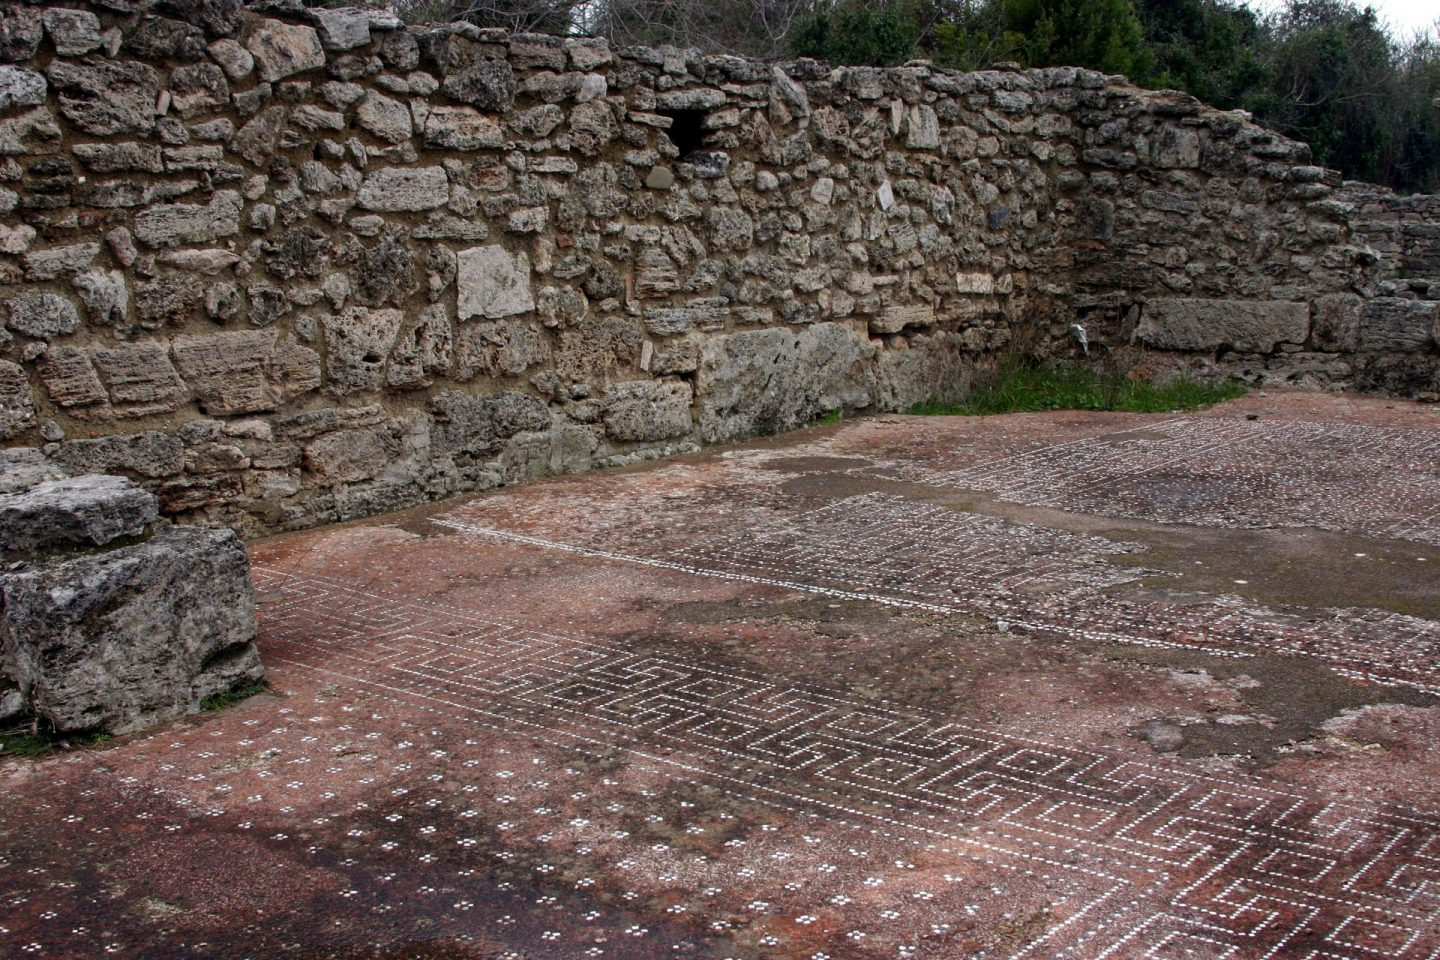 mosaic floors in ruins on ancient roman homes in Paestum